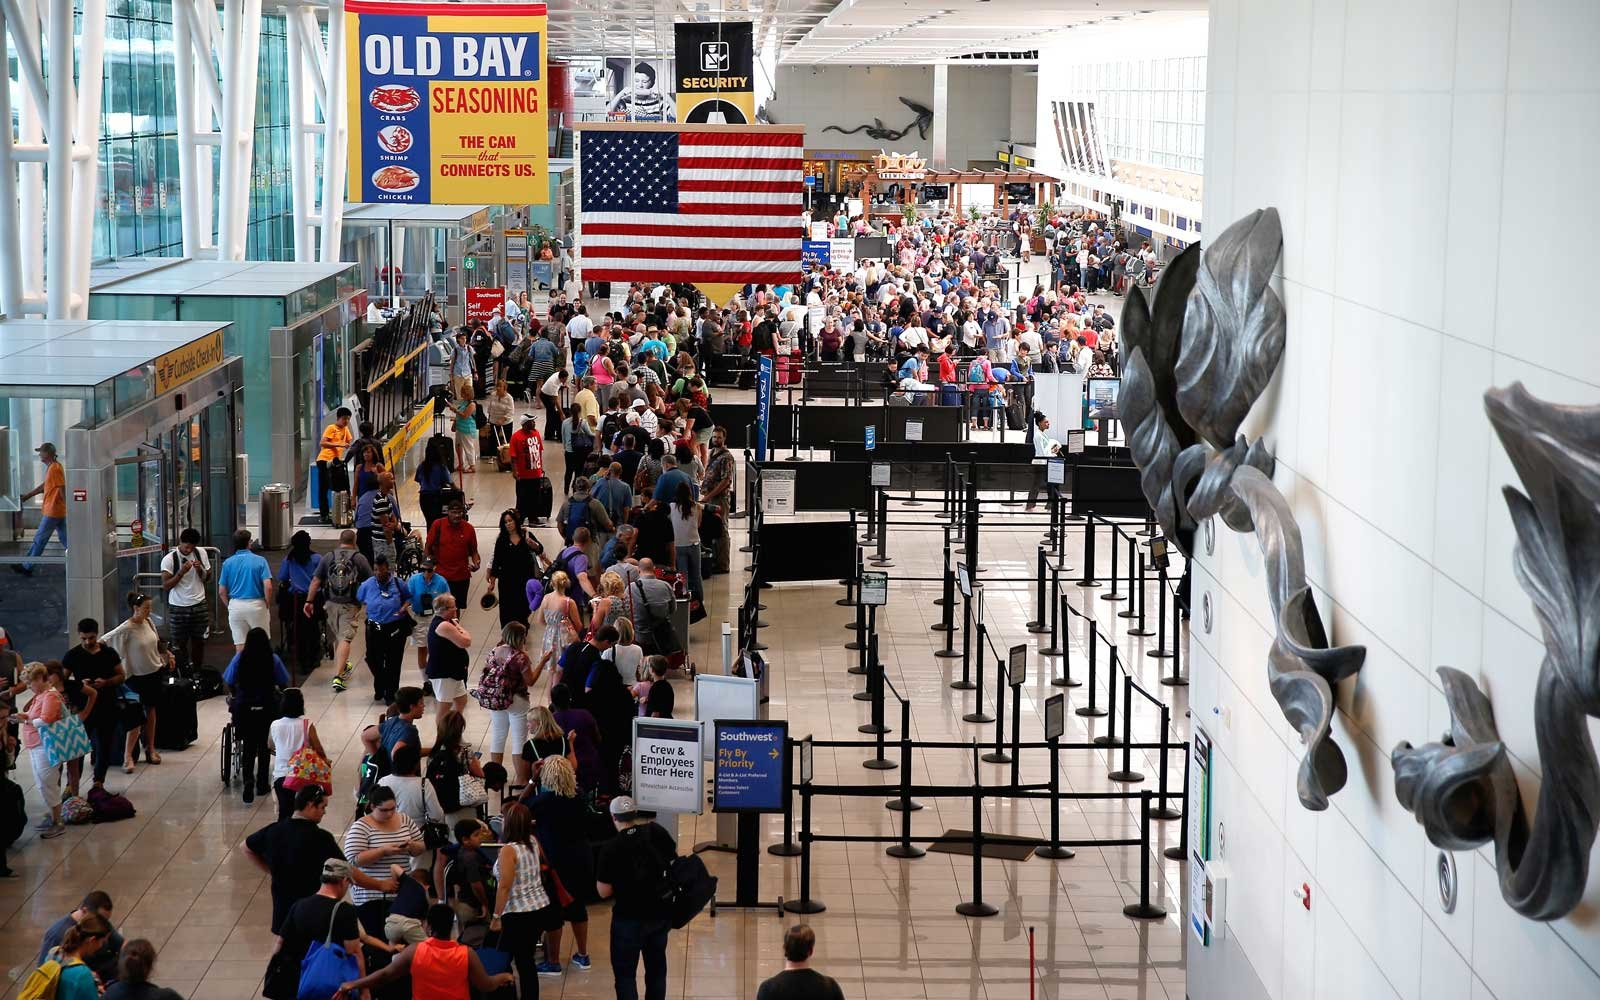 Travelers wait in line at the Southwest ticket check in at Baltimore/Washington International Thurgood Marshall Airport